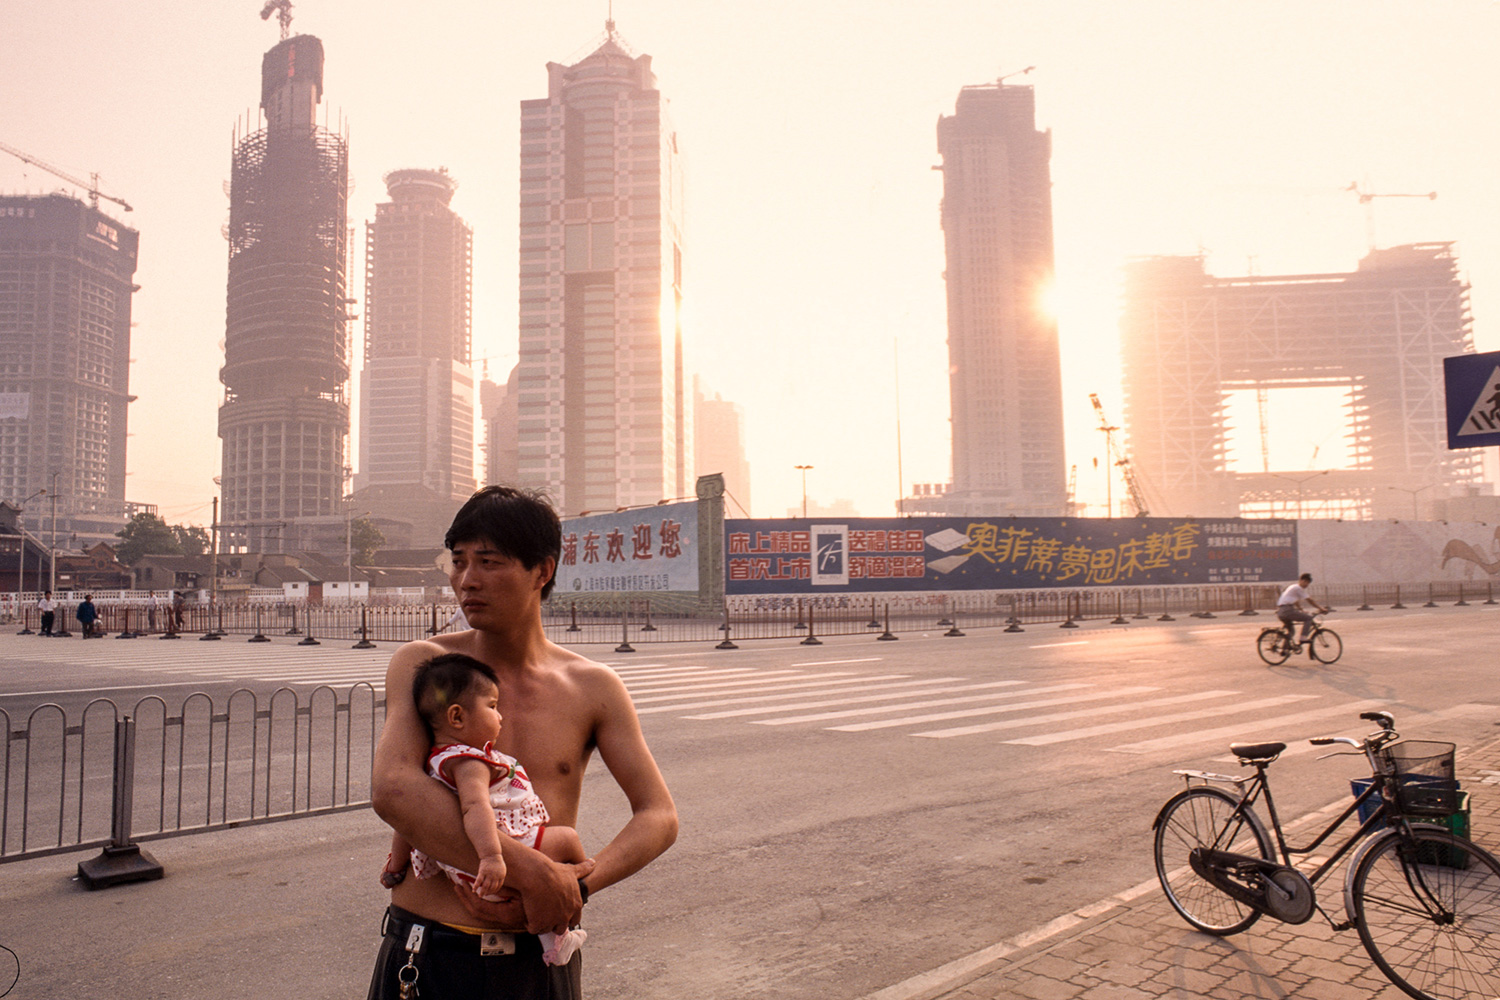 Outside his living quarters in Lujiazui, a construction worker from China's countryside holds his child, 1996.